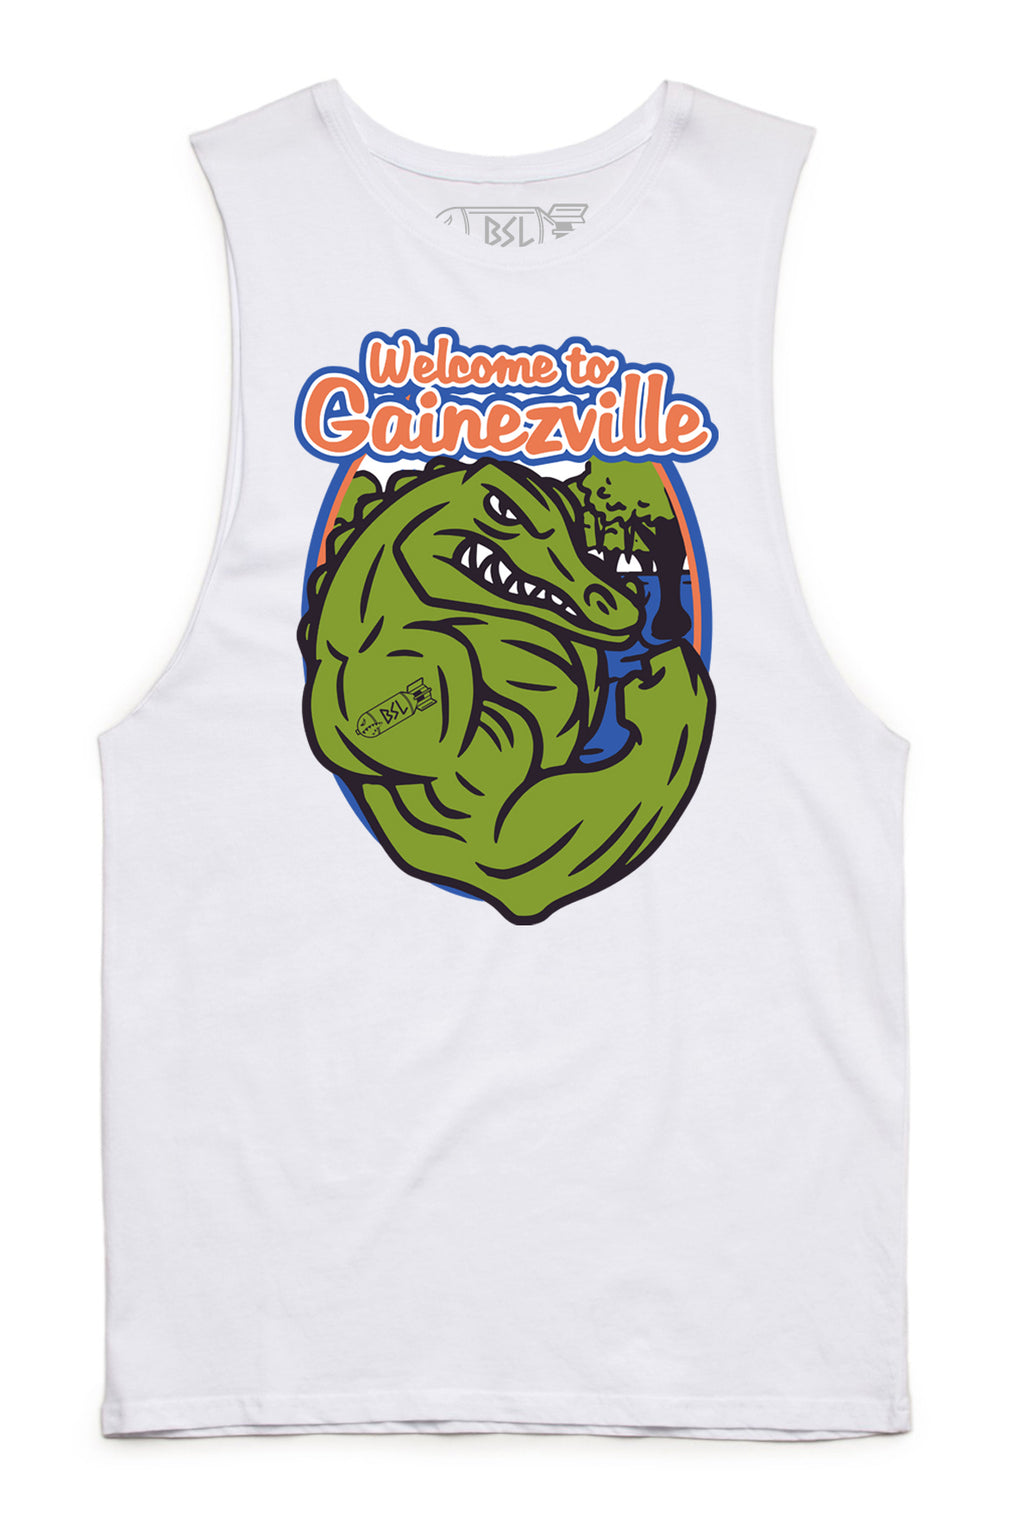 Gainezville Tank Cut-Offs - White